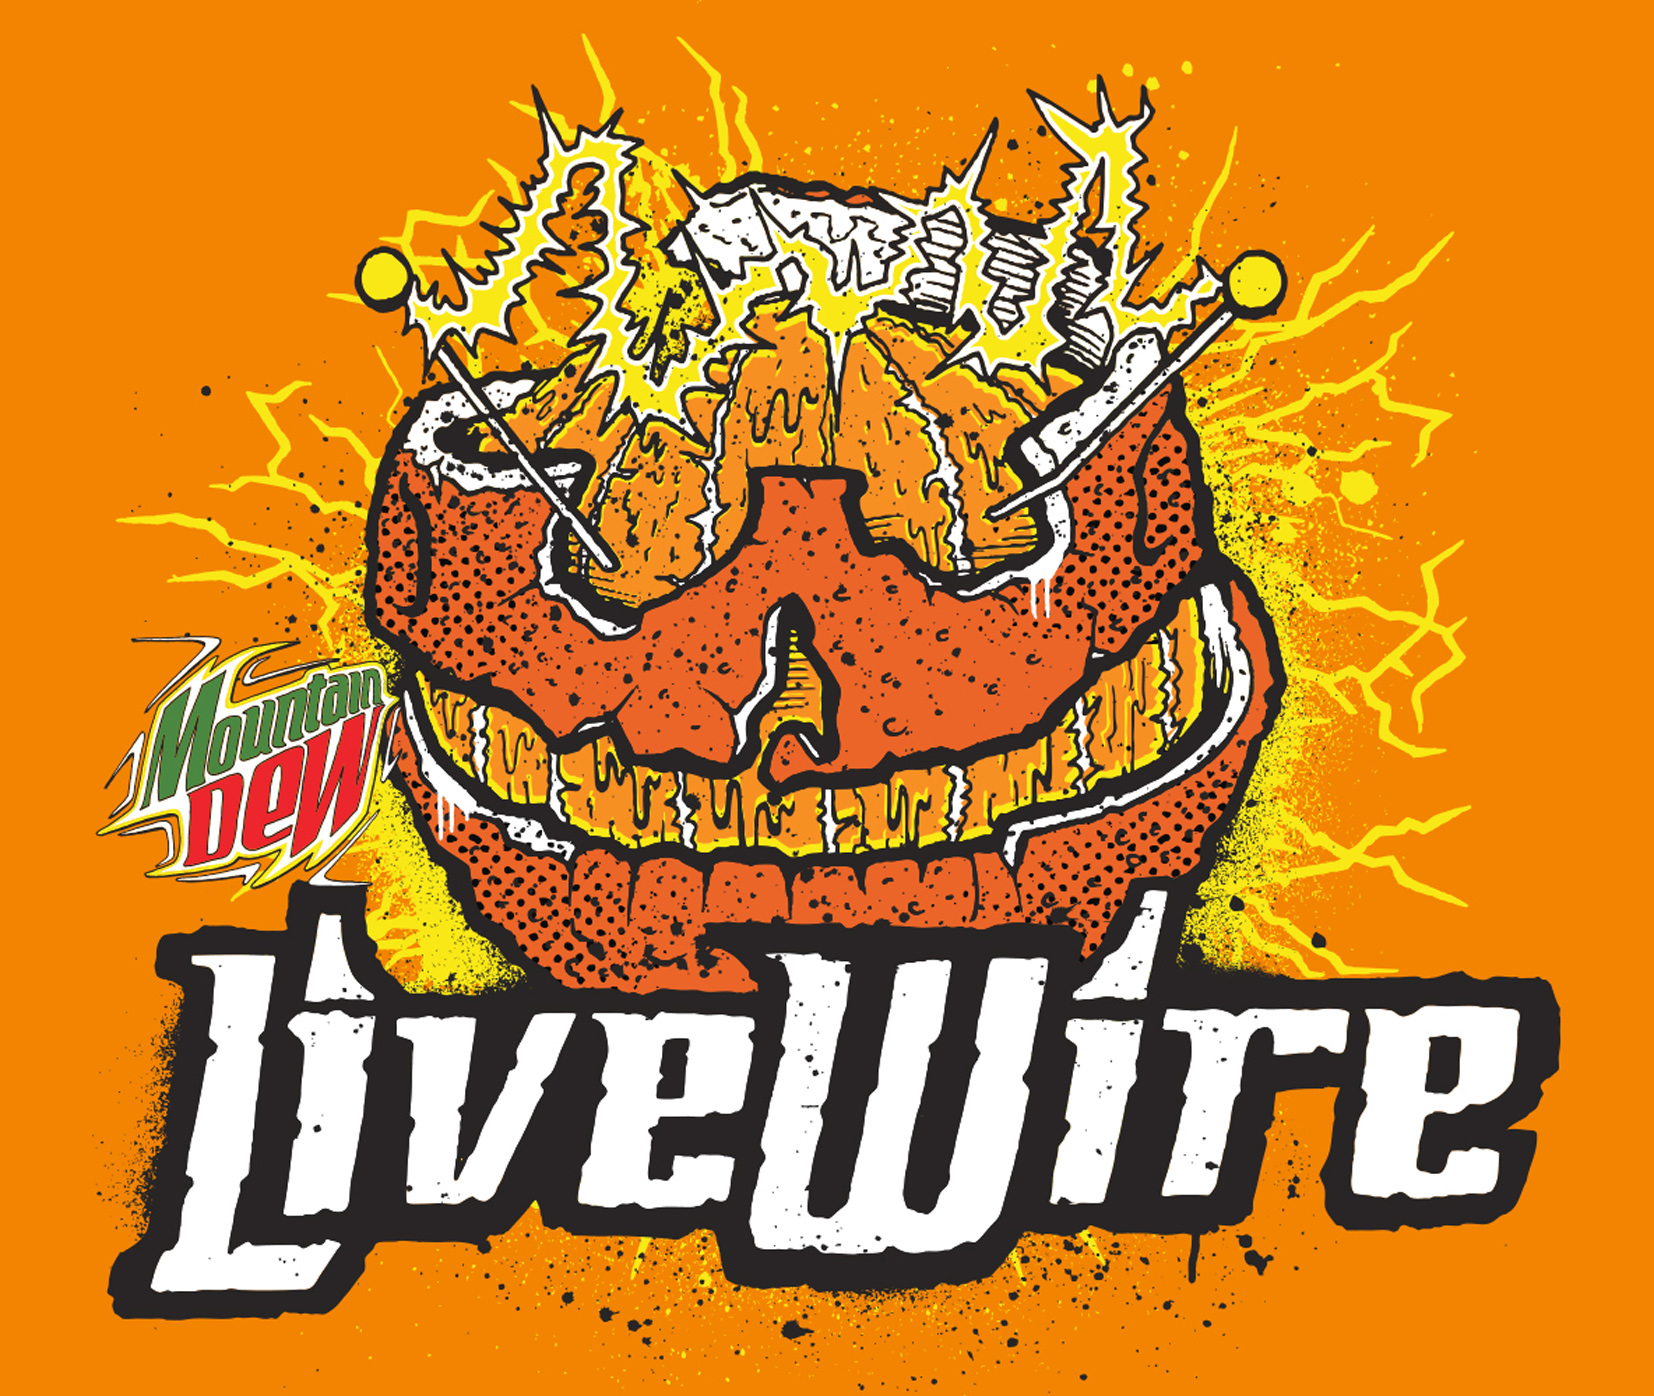 Live Wire / Mountain Dew